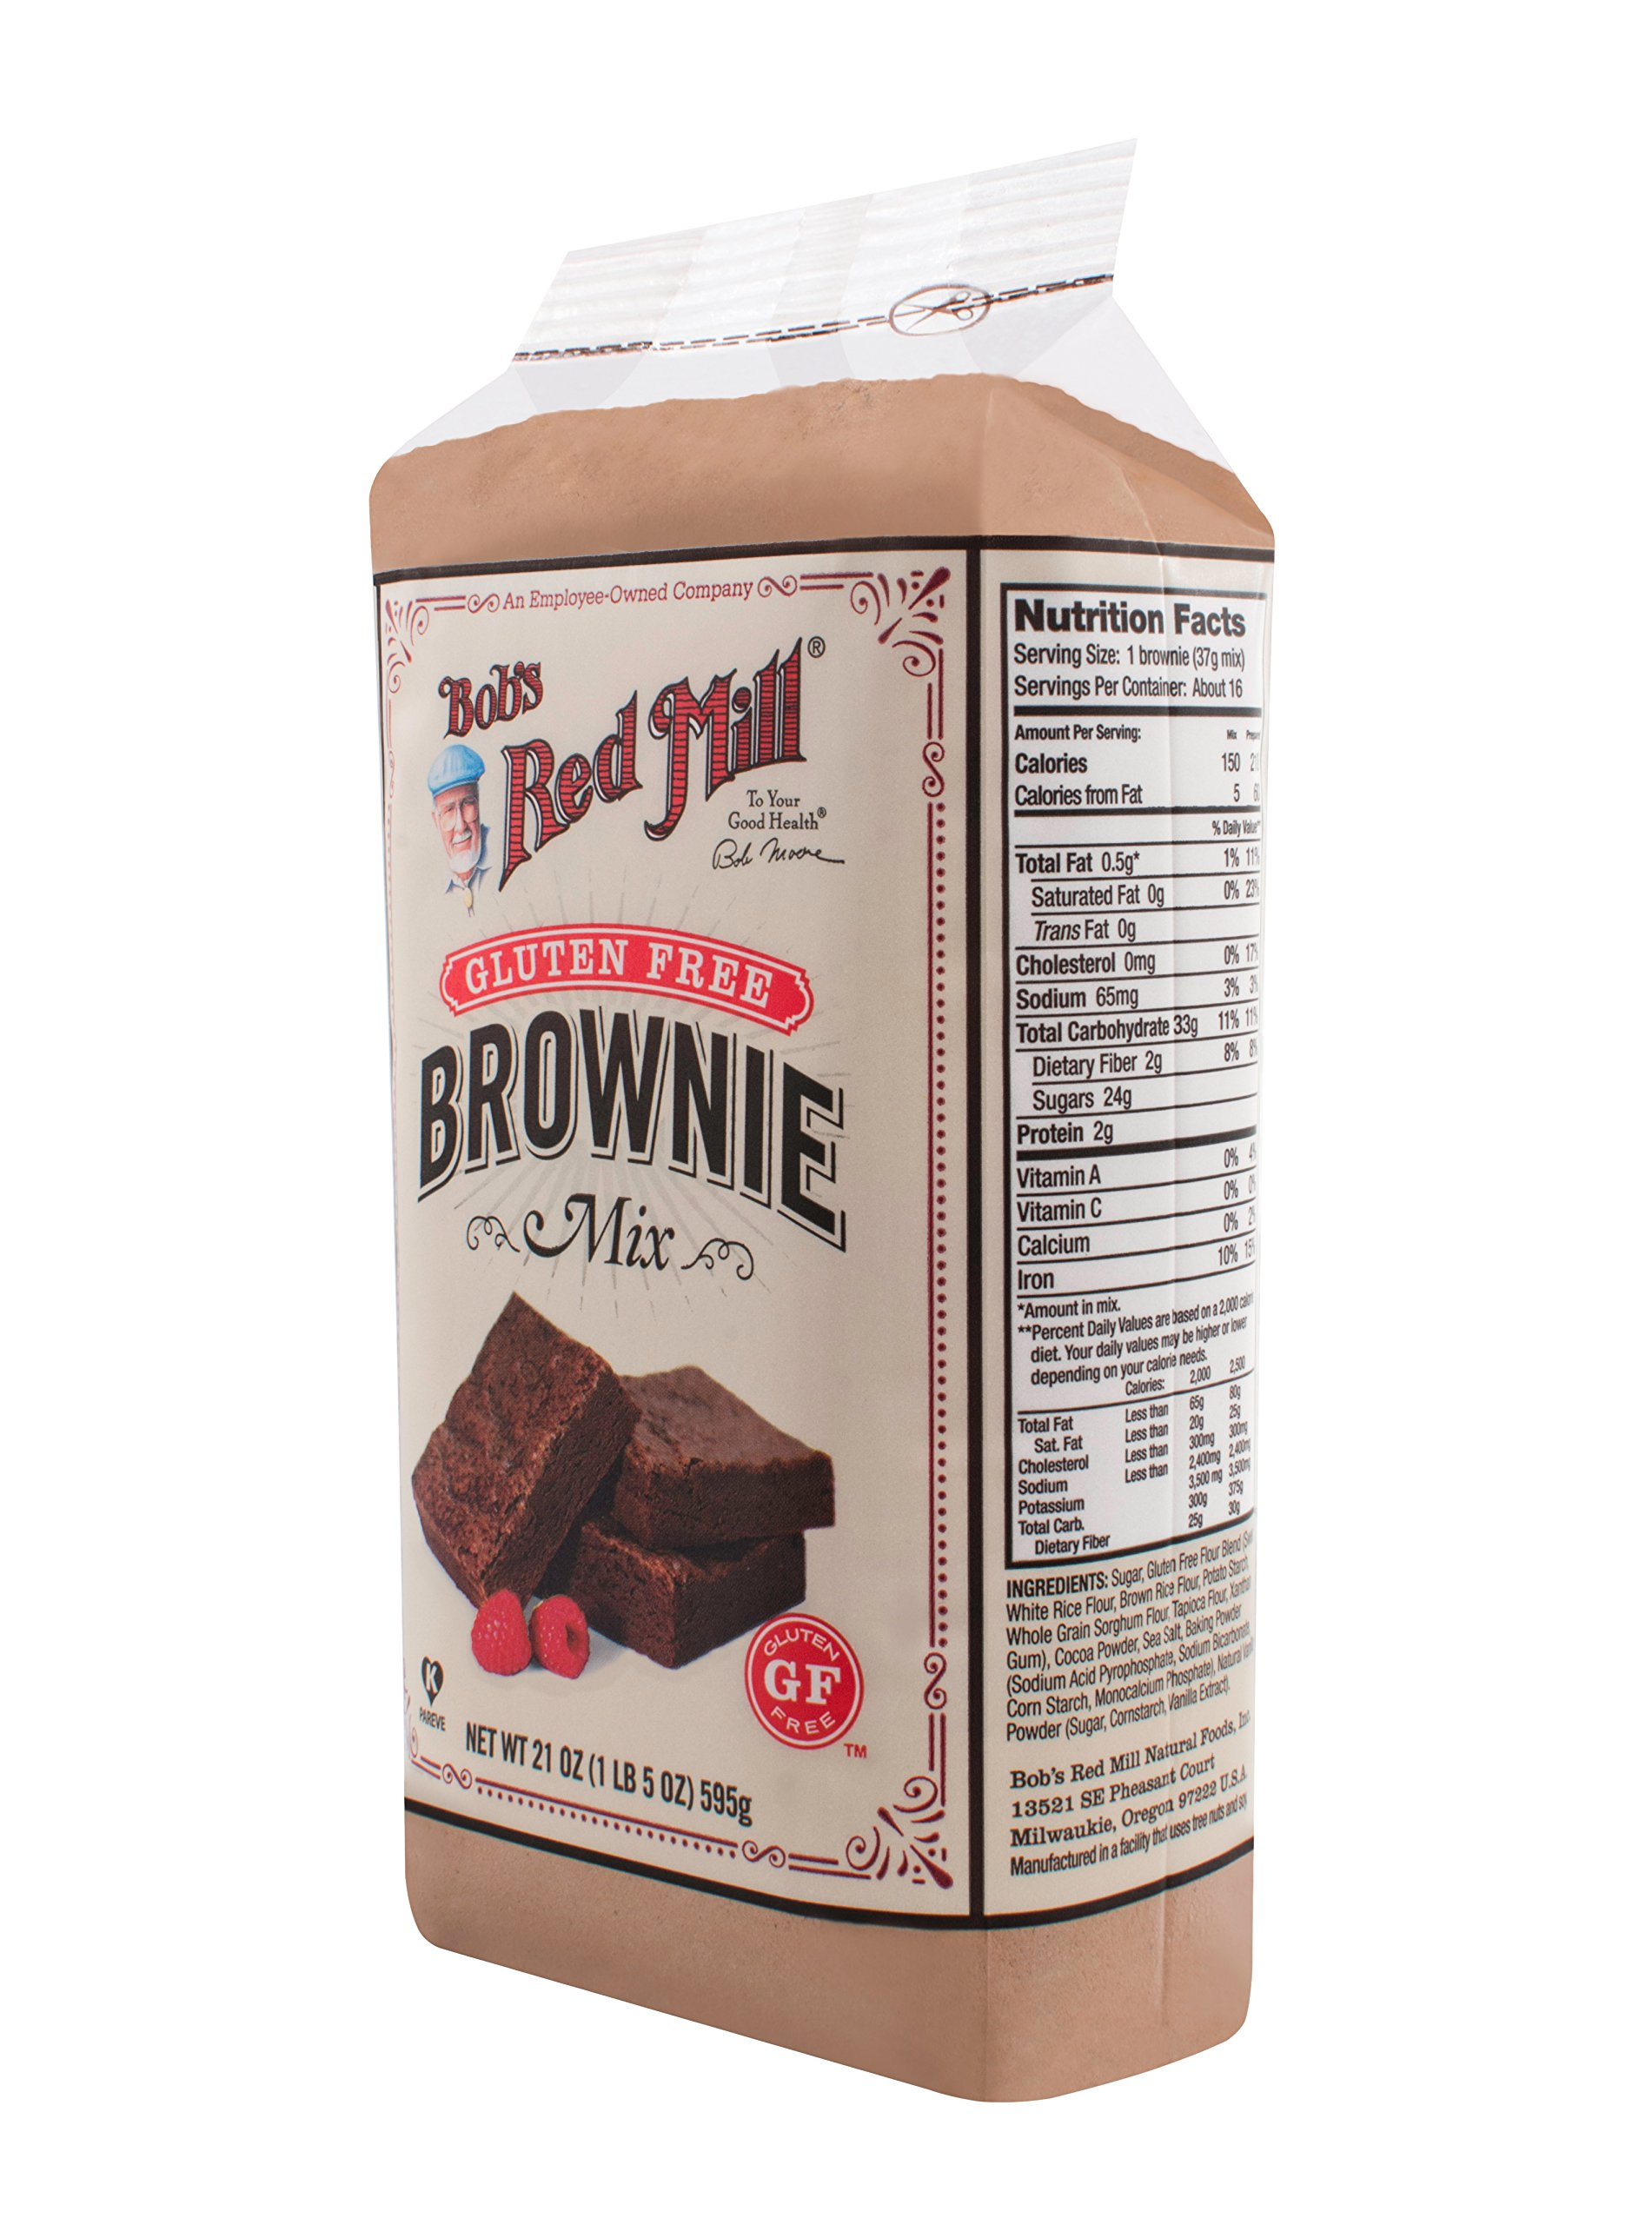 Bobs Red Mill Brownie Mix, 21 Ounce by Bob's Red Mill (Image #6)